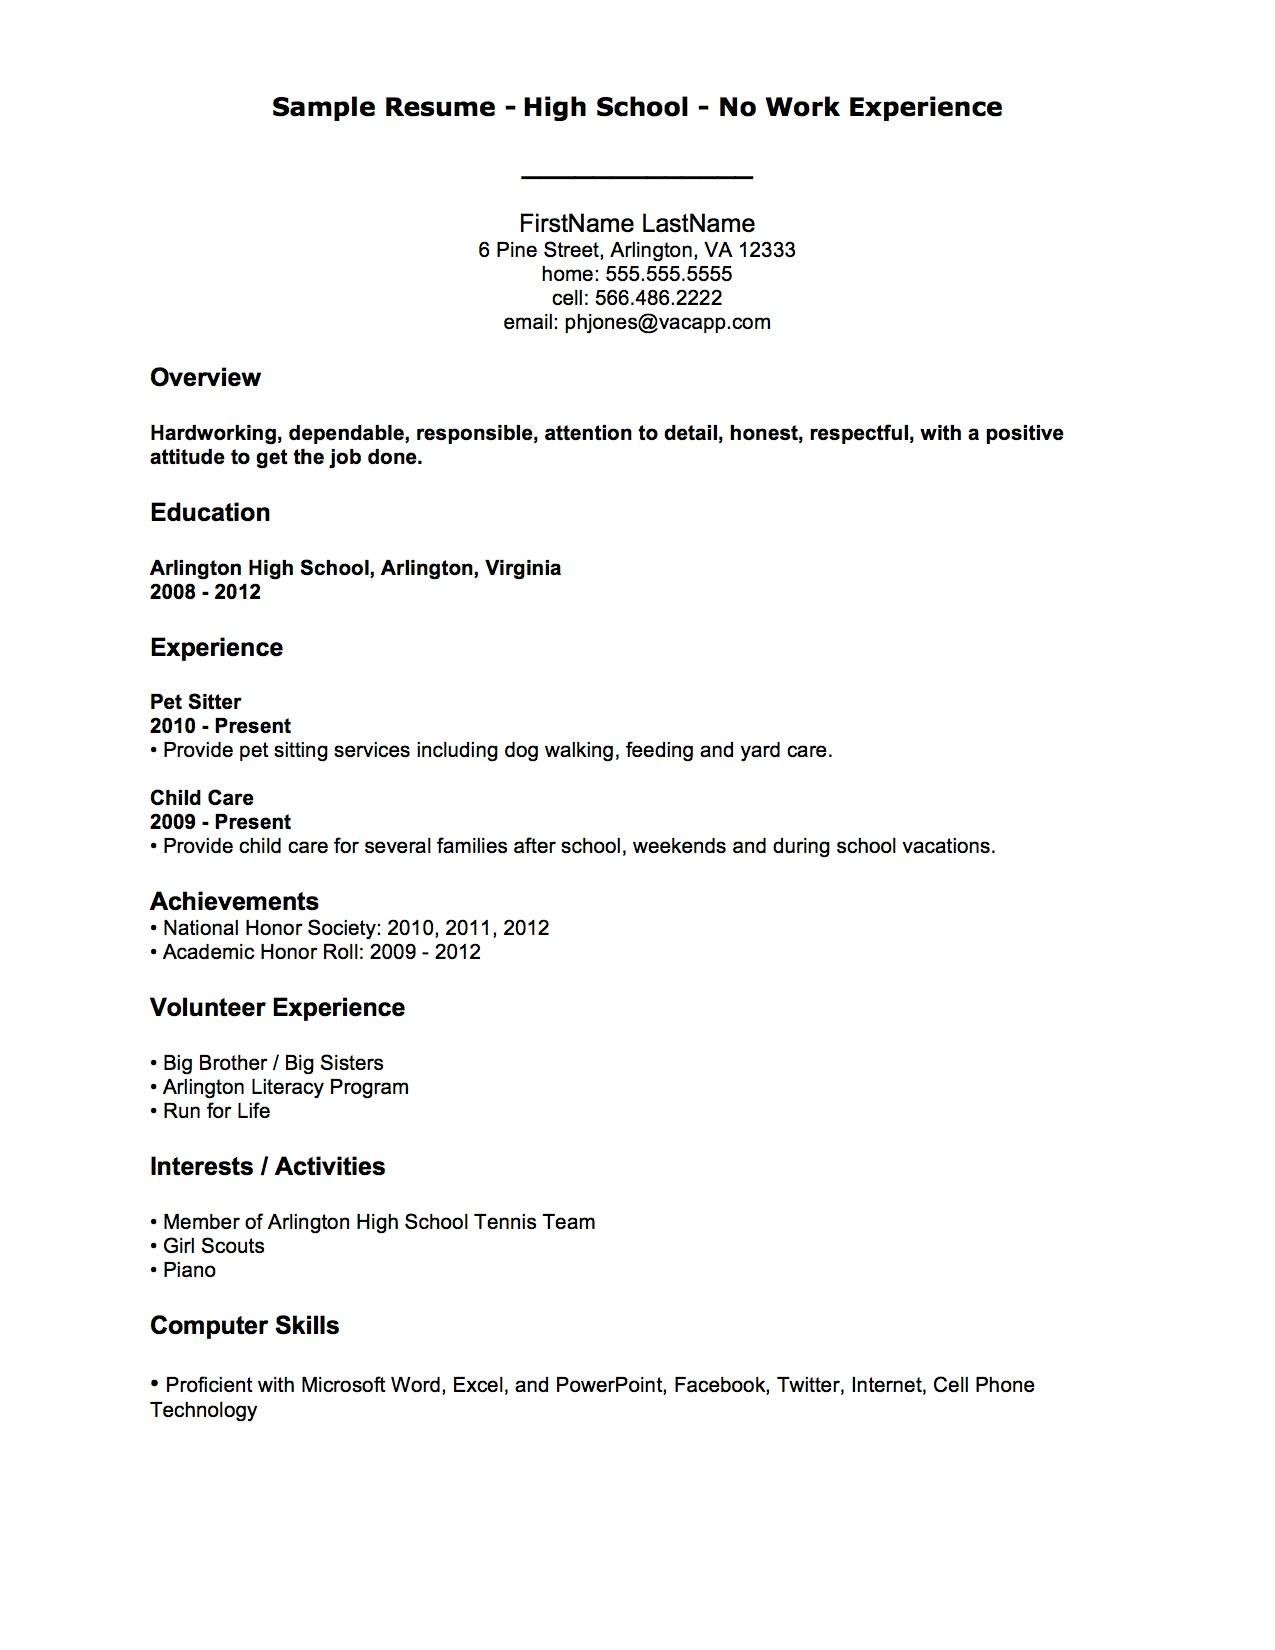 How To Write A Resume With No Work Experience No Work Experience  Resume Examples And Teacher